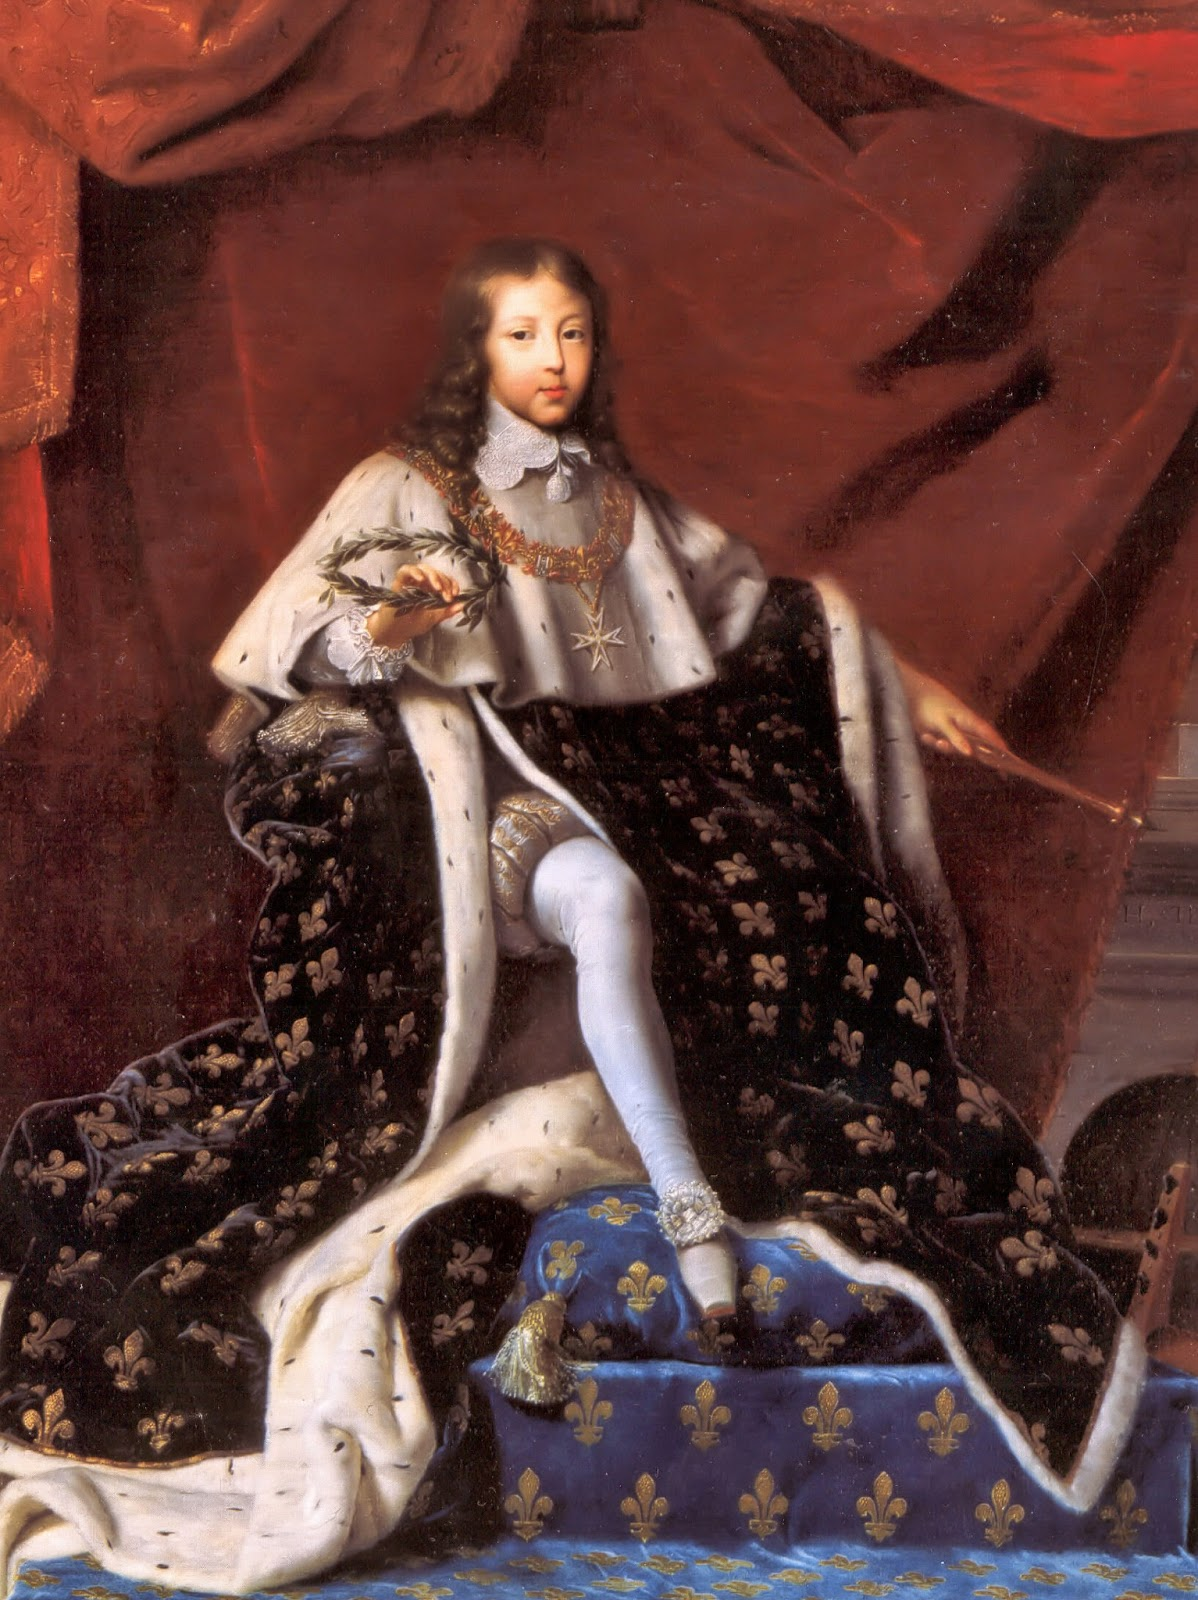 The Tobacco Pipe Artistory: Tobacco under King Louis XIV of France